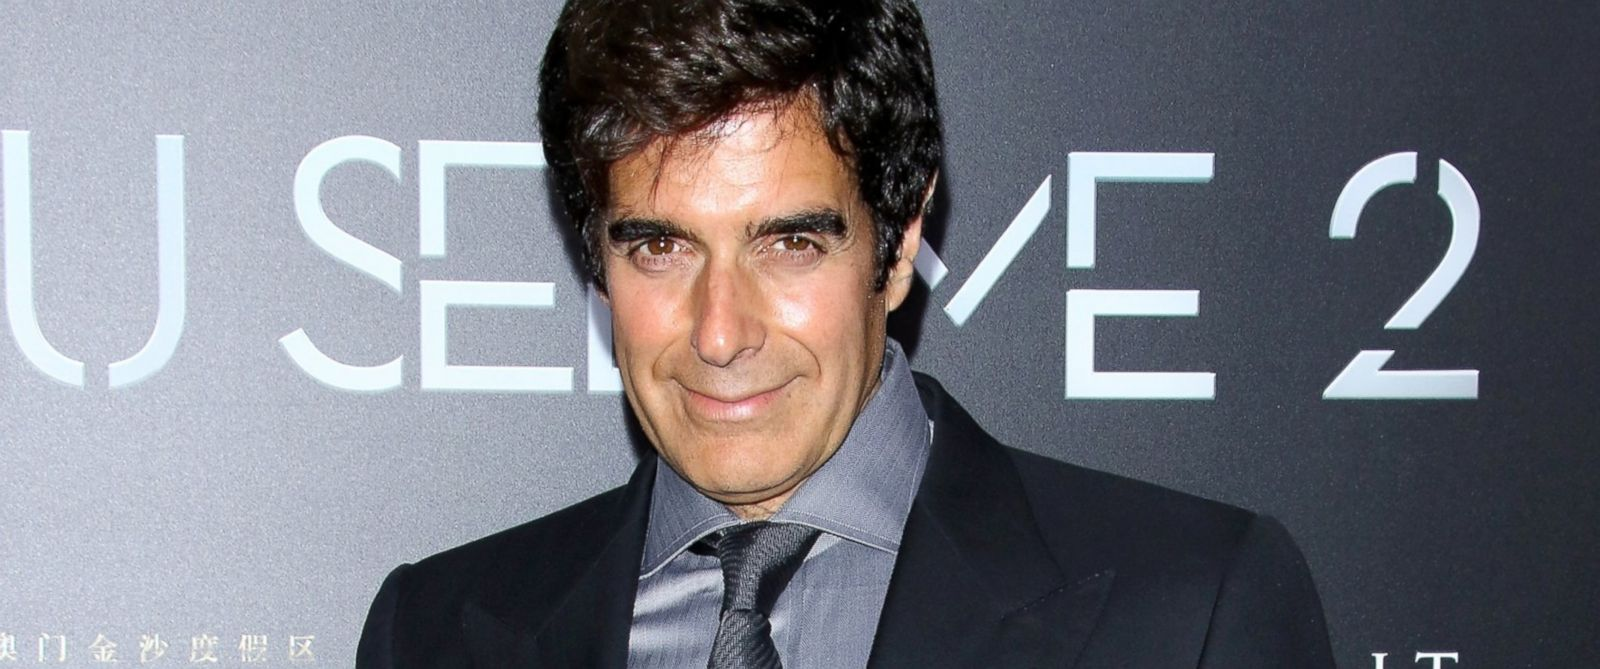 david copperfield videos at abc news video archive at abcnews com david copperfield heads to capitol hill to support bill that would recognize magic as national treasure